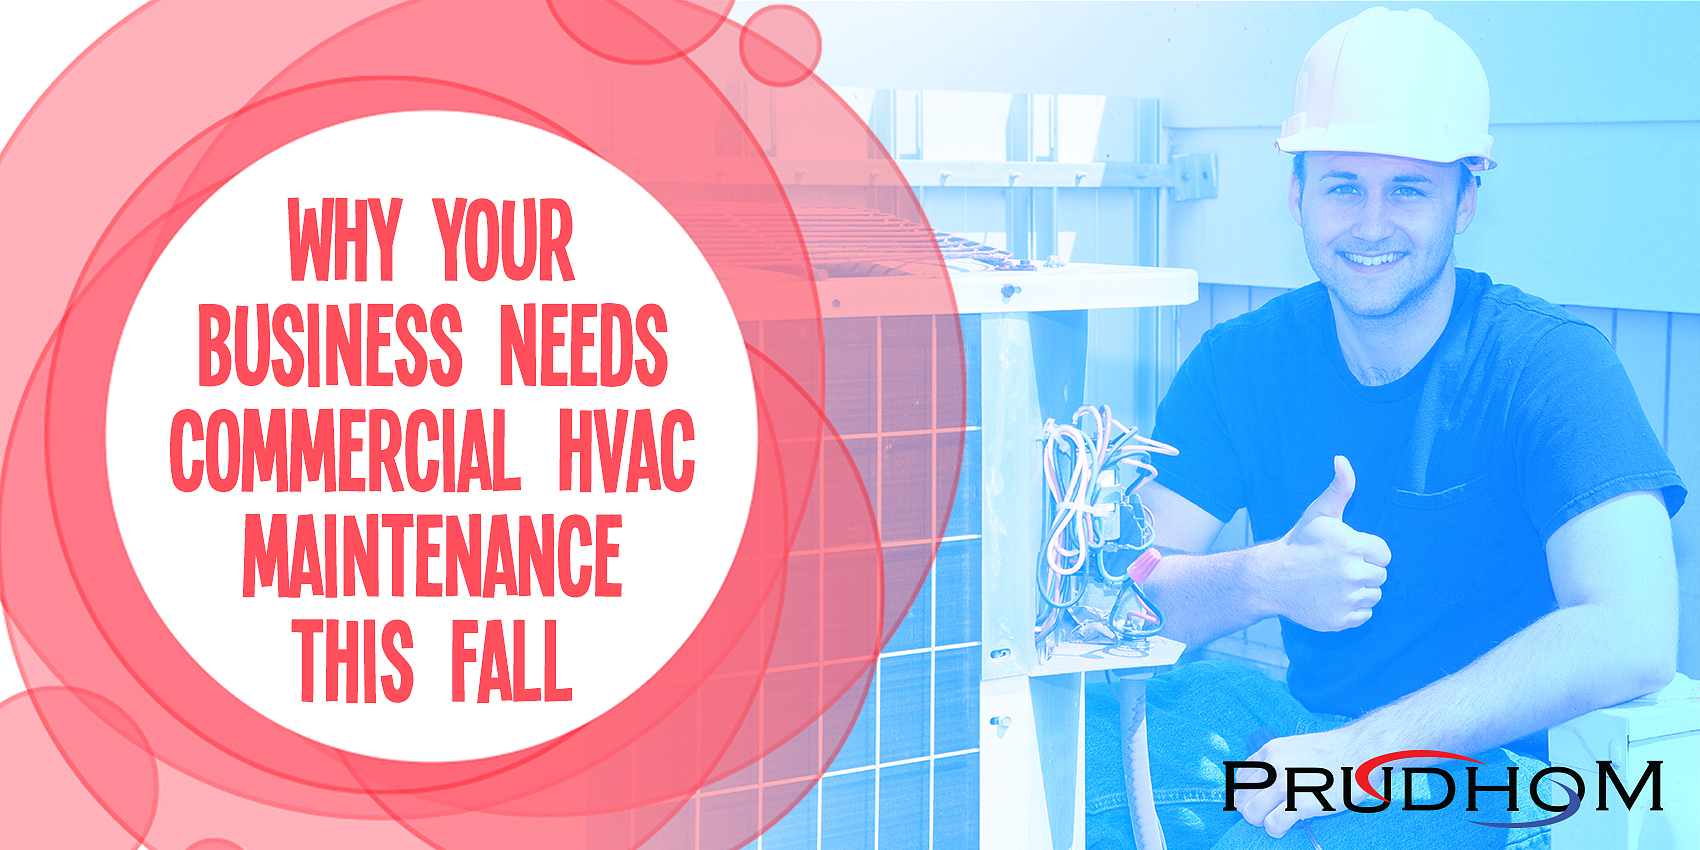 Why Your Business Needs Commercial HVAC Maintenance This Fall